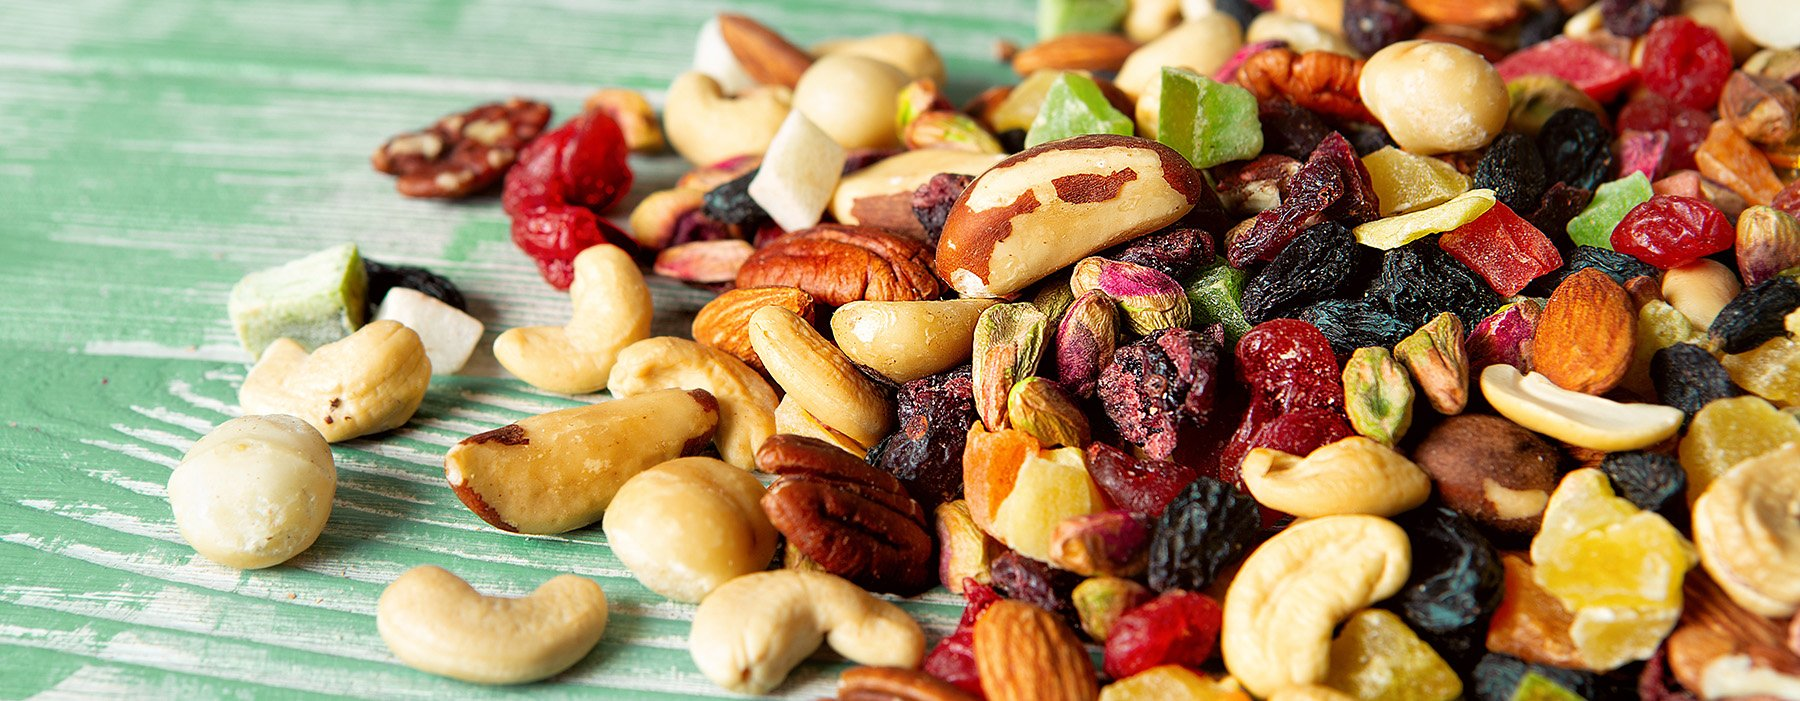 nuts fruits seeds